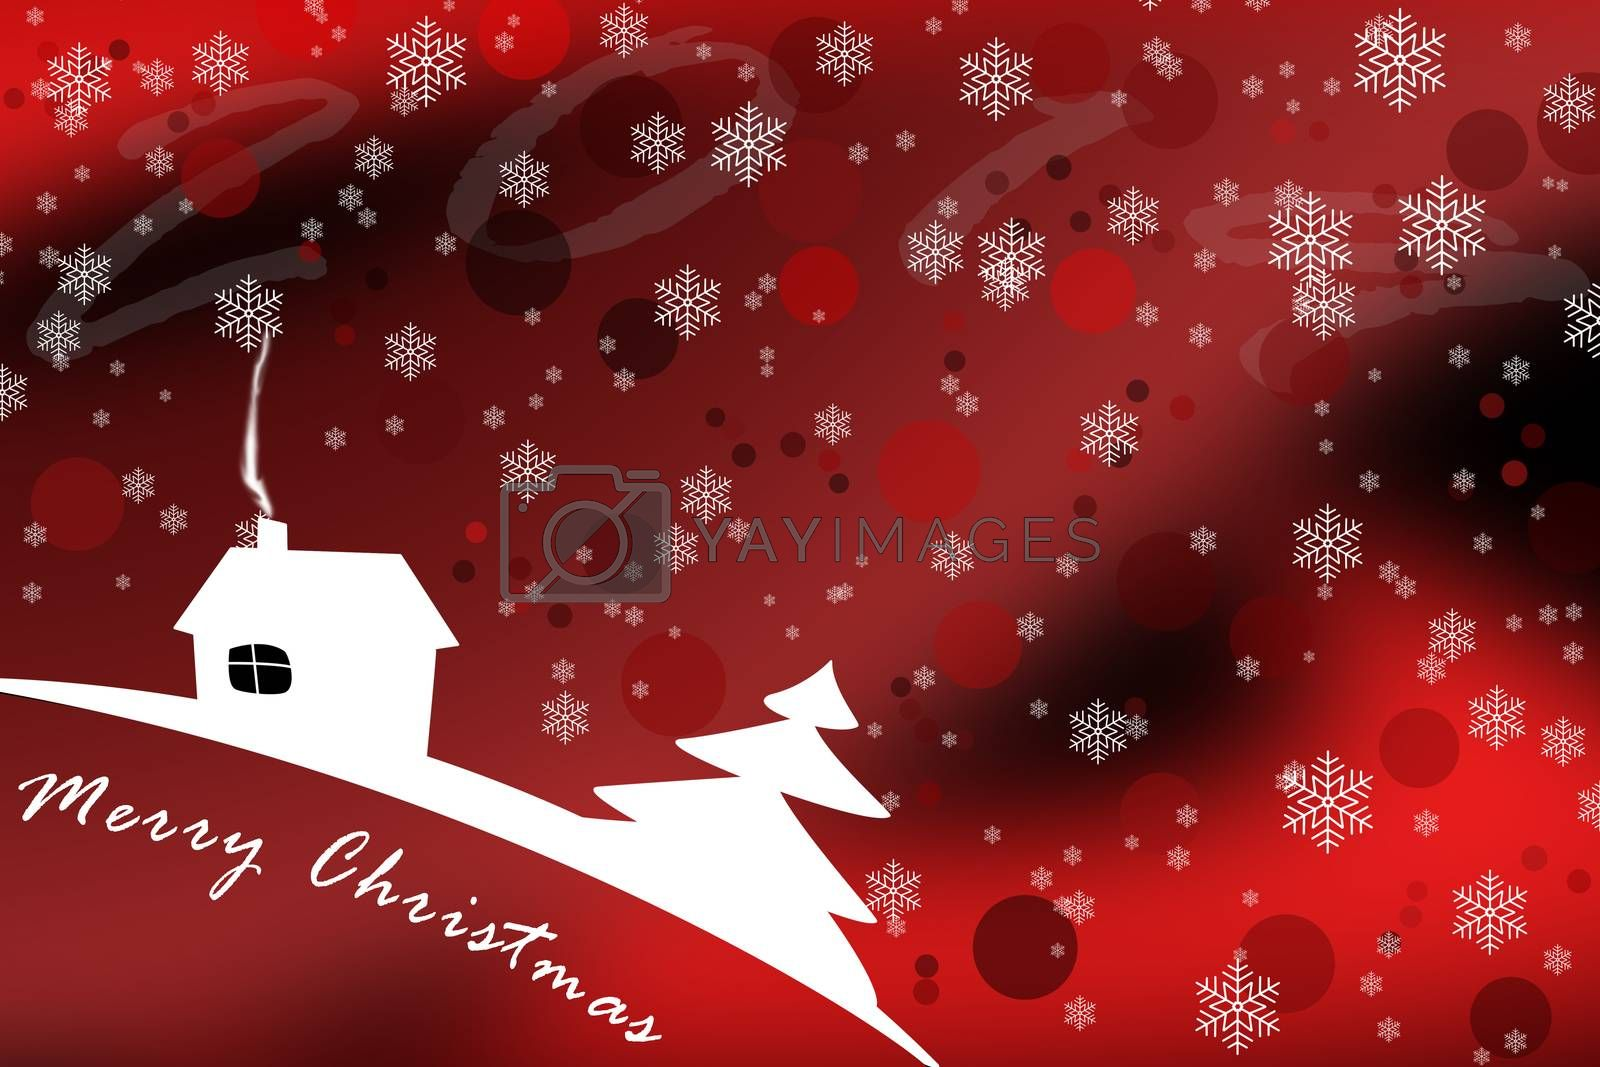 Pattern with snowflakes for merry Christmas greetings with red background